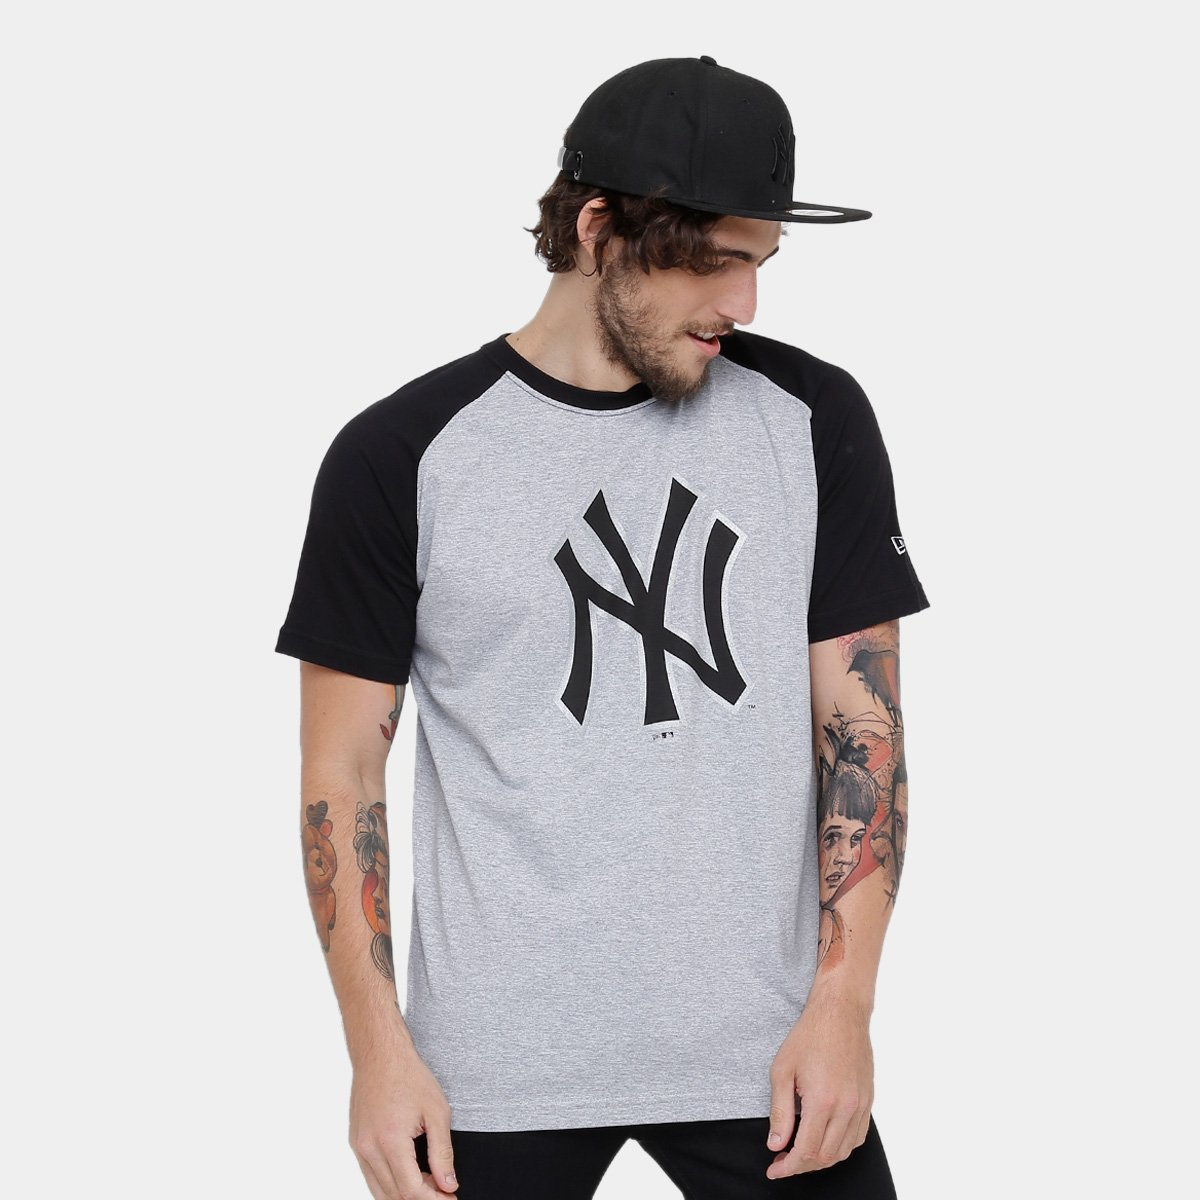 Camiseta MLB New York Yankees New Era Logo Masculina. undefined dab82c9955570